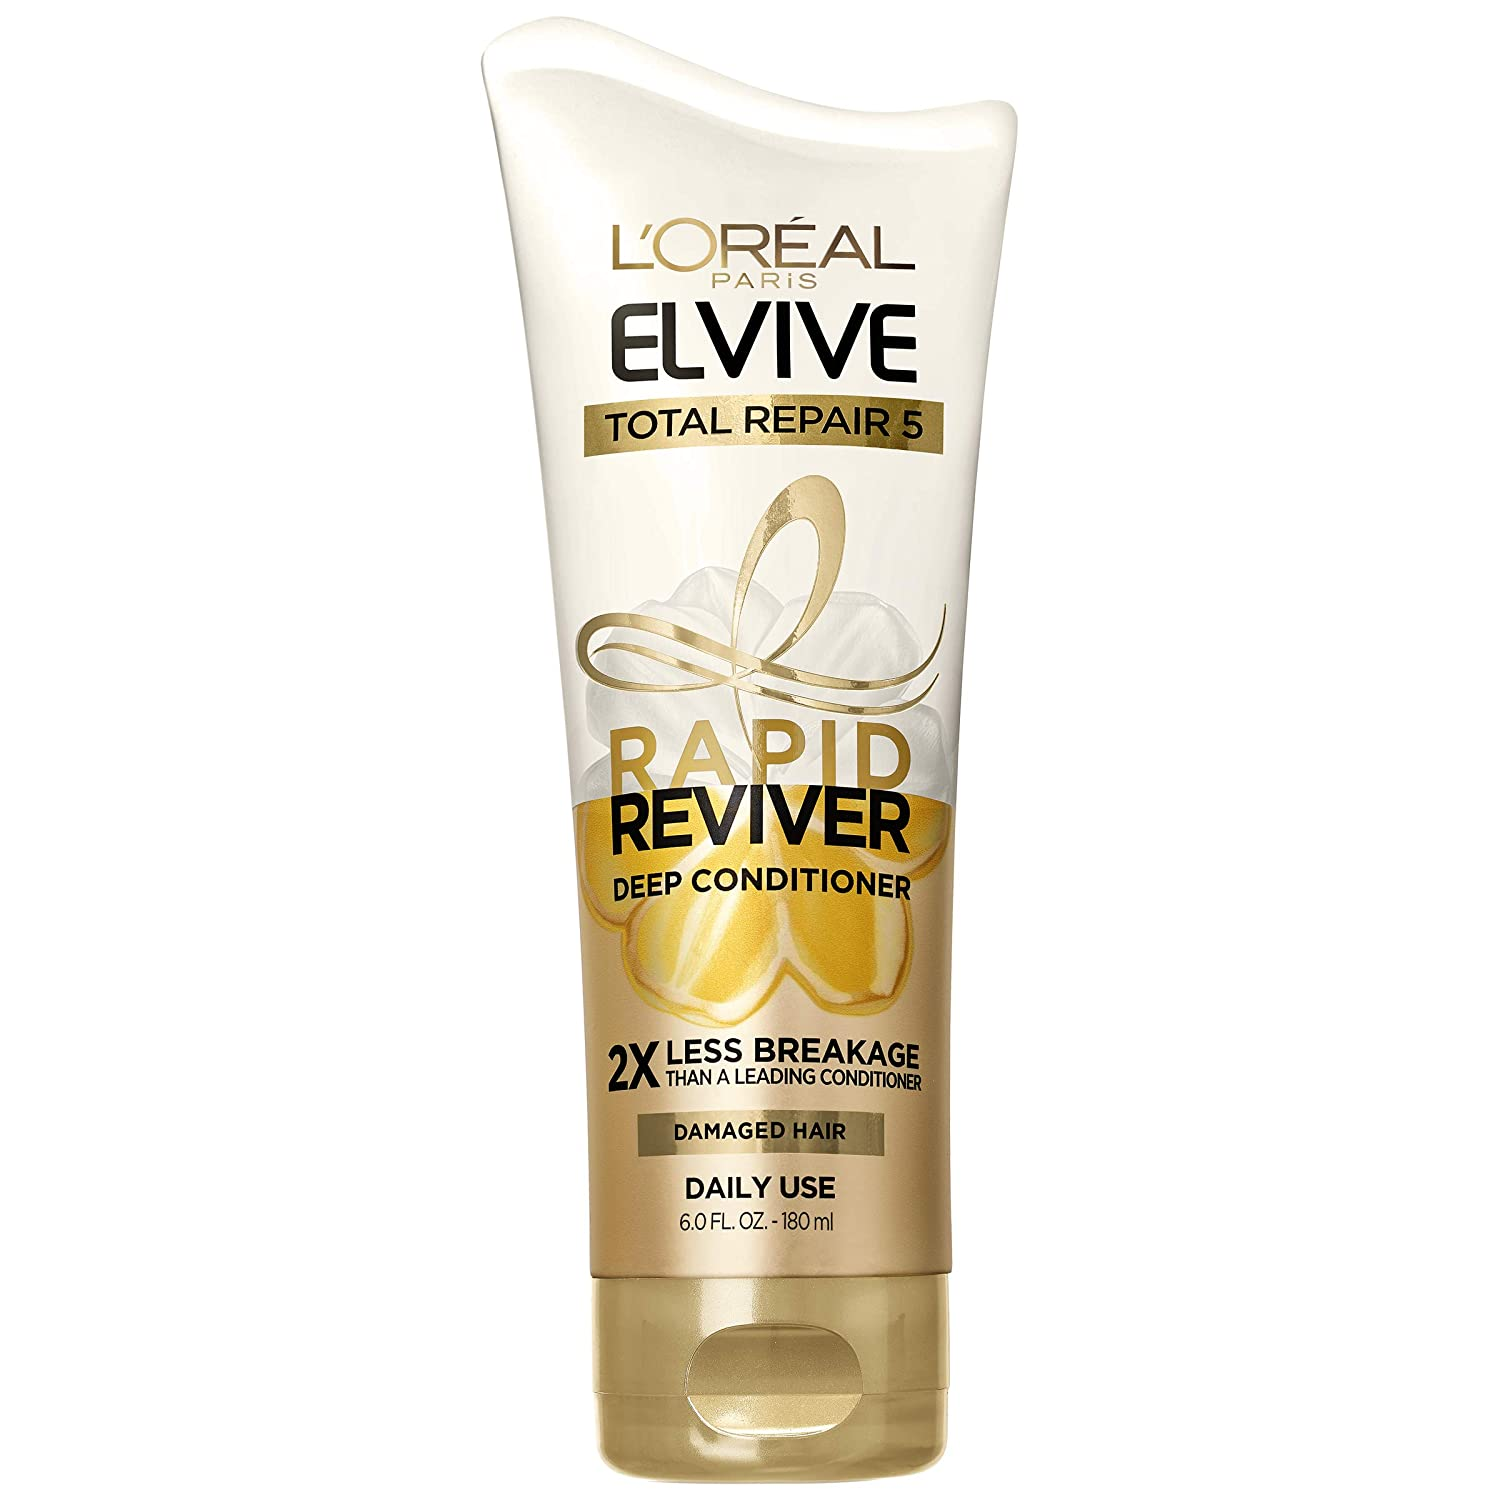 L'Oréal Paris Elvive Total Repair 5 Rapid Reviver Deep Conditioner, Repairs Damaged Hair, No Leave-In Time, Heat Protectant, with Damage Repairing Serum and Protein, 6 oz.